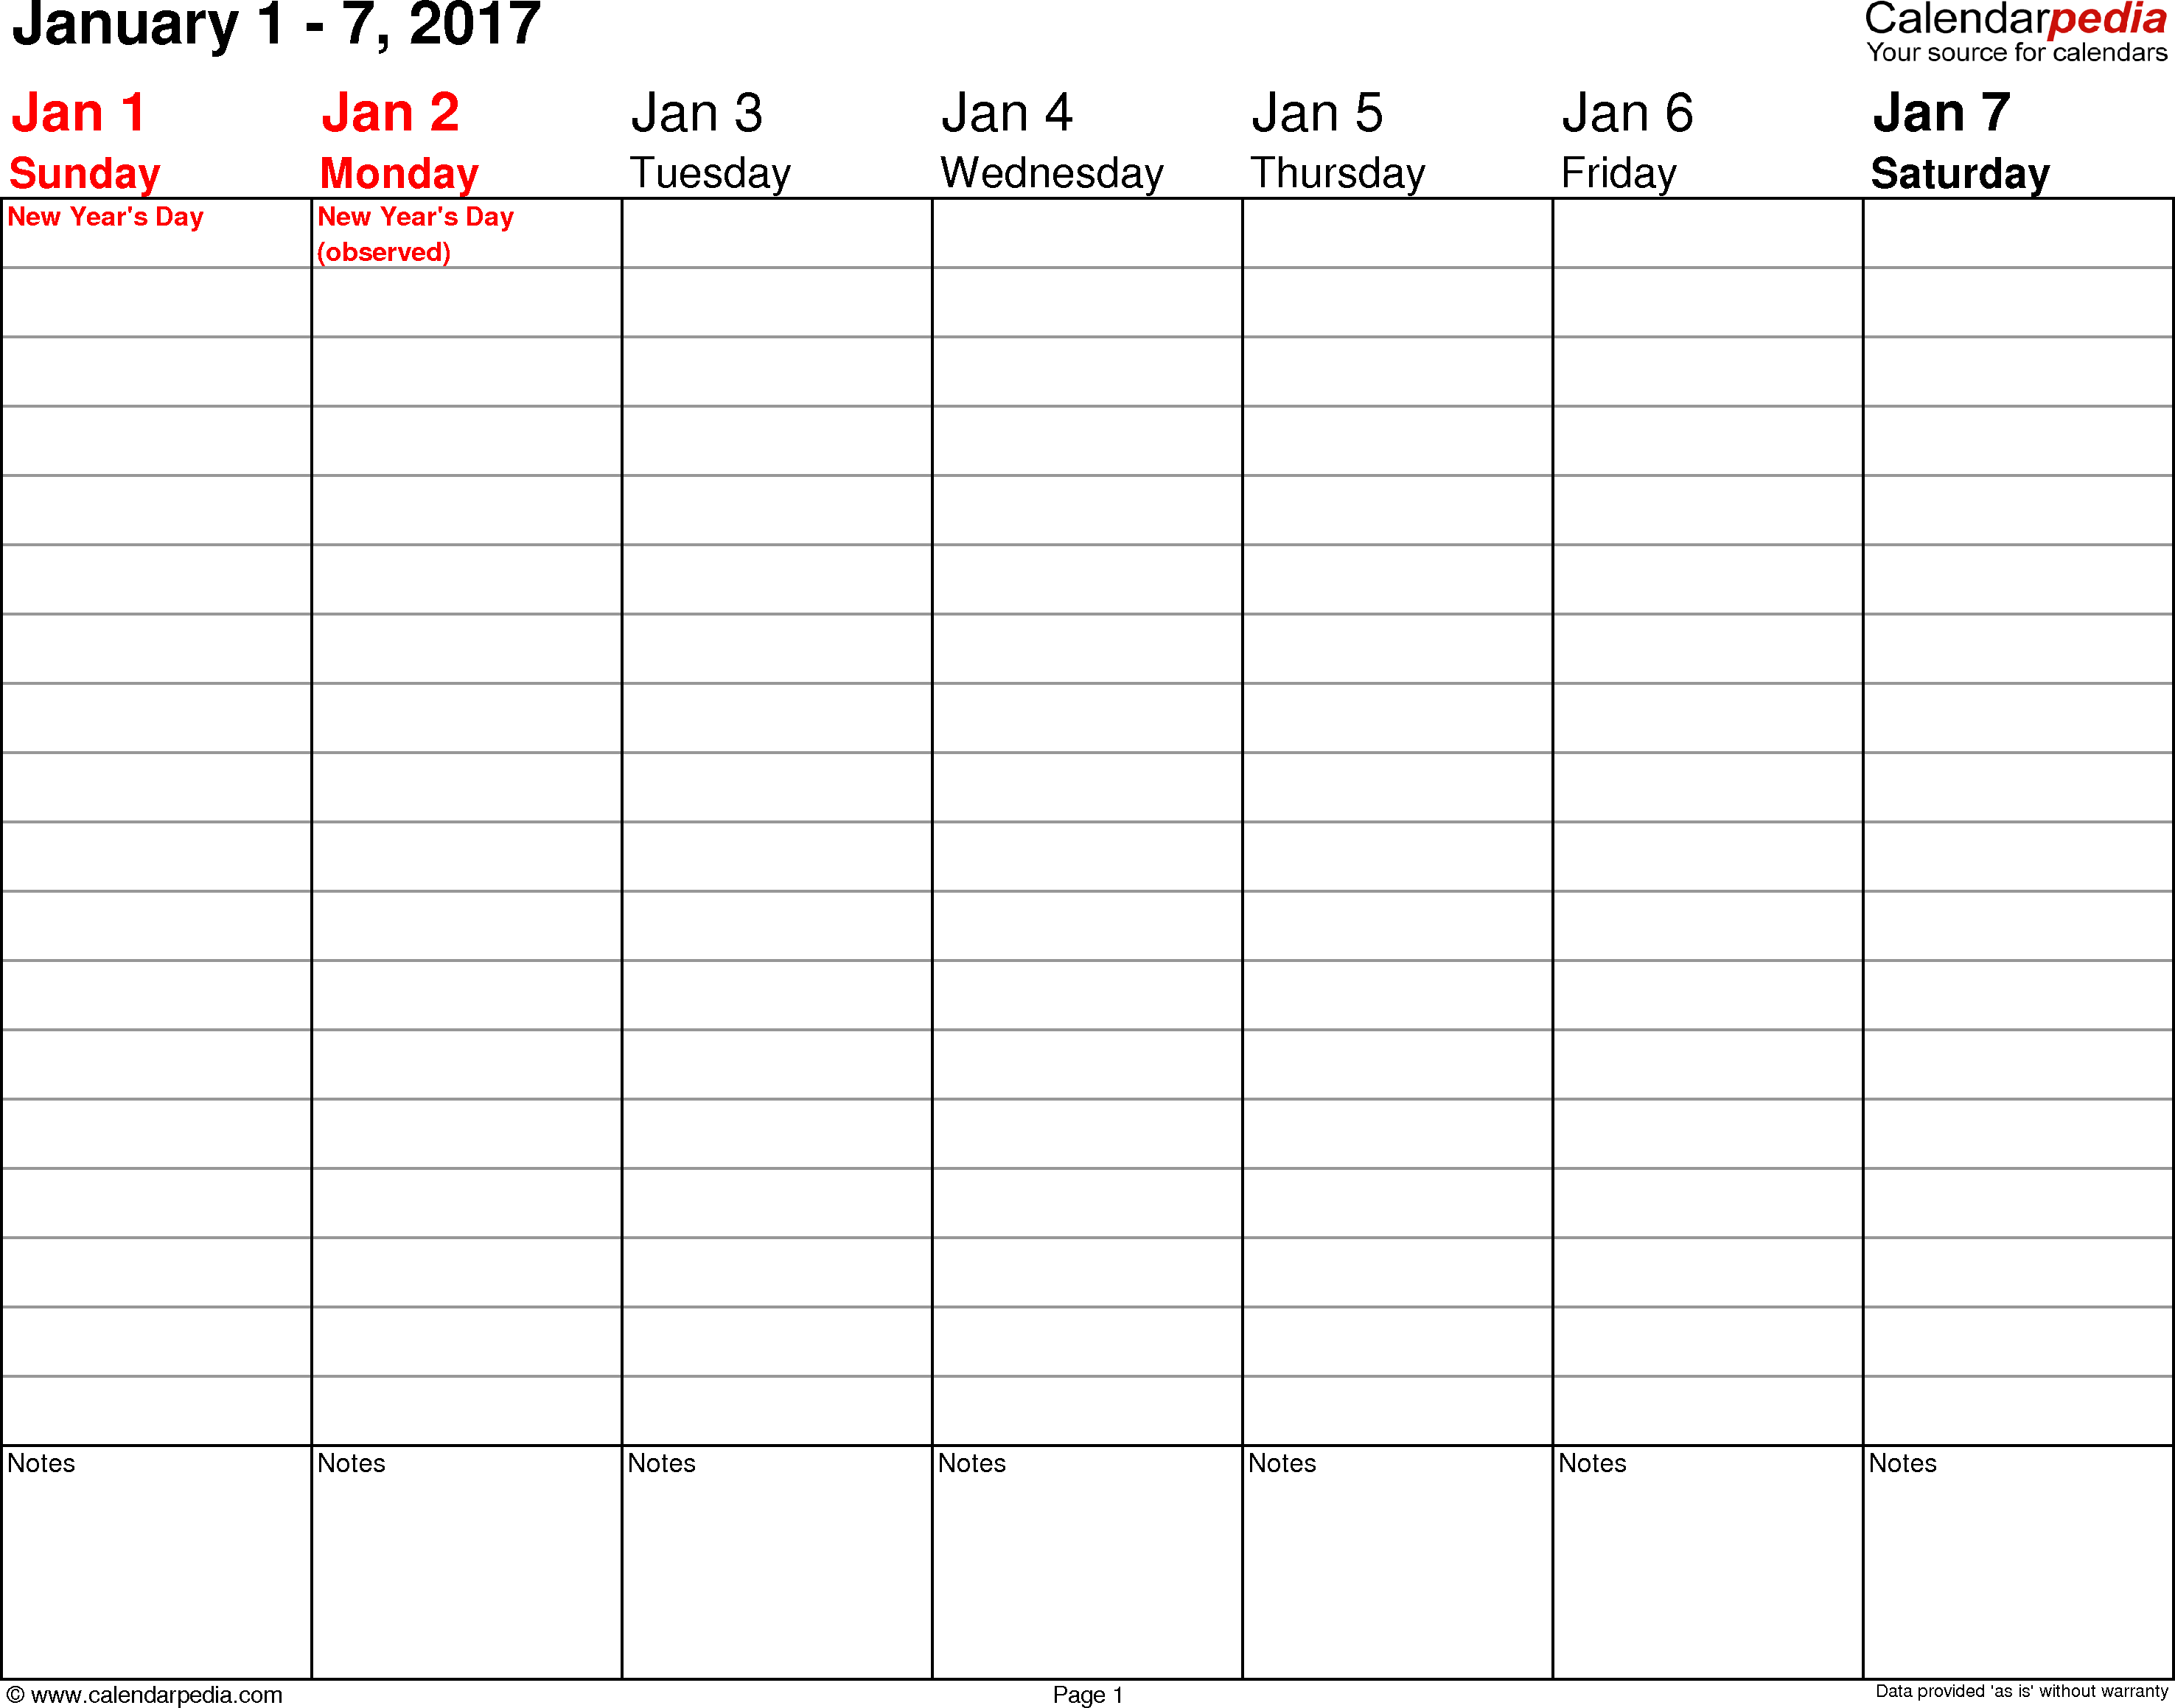 Weekly calendar 2017: template for Excel version 3, landscape, 53 pages, no time markings for flexible use